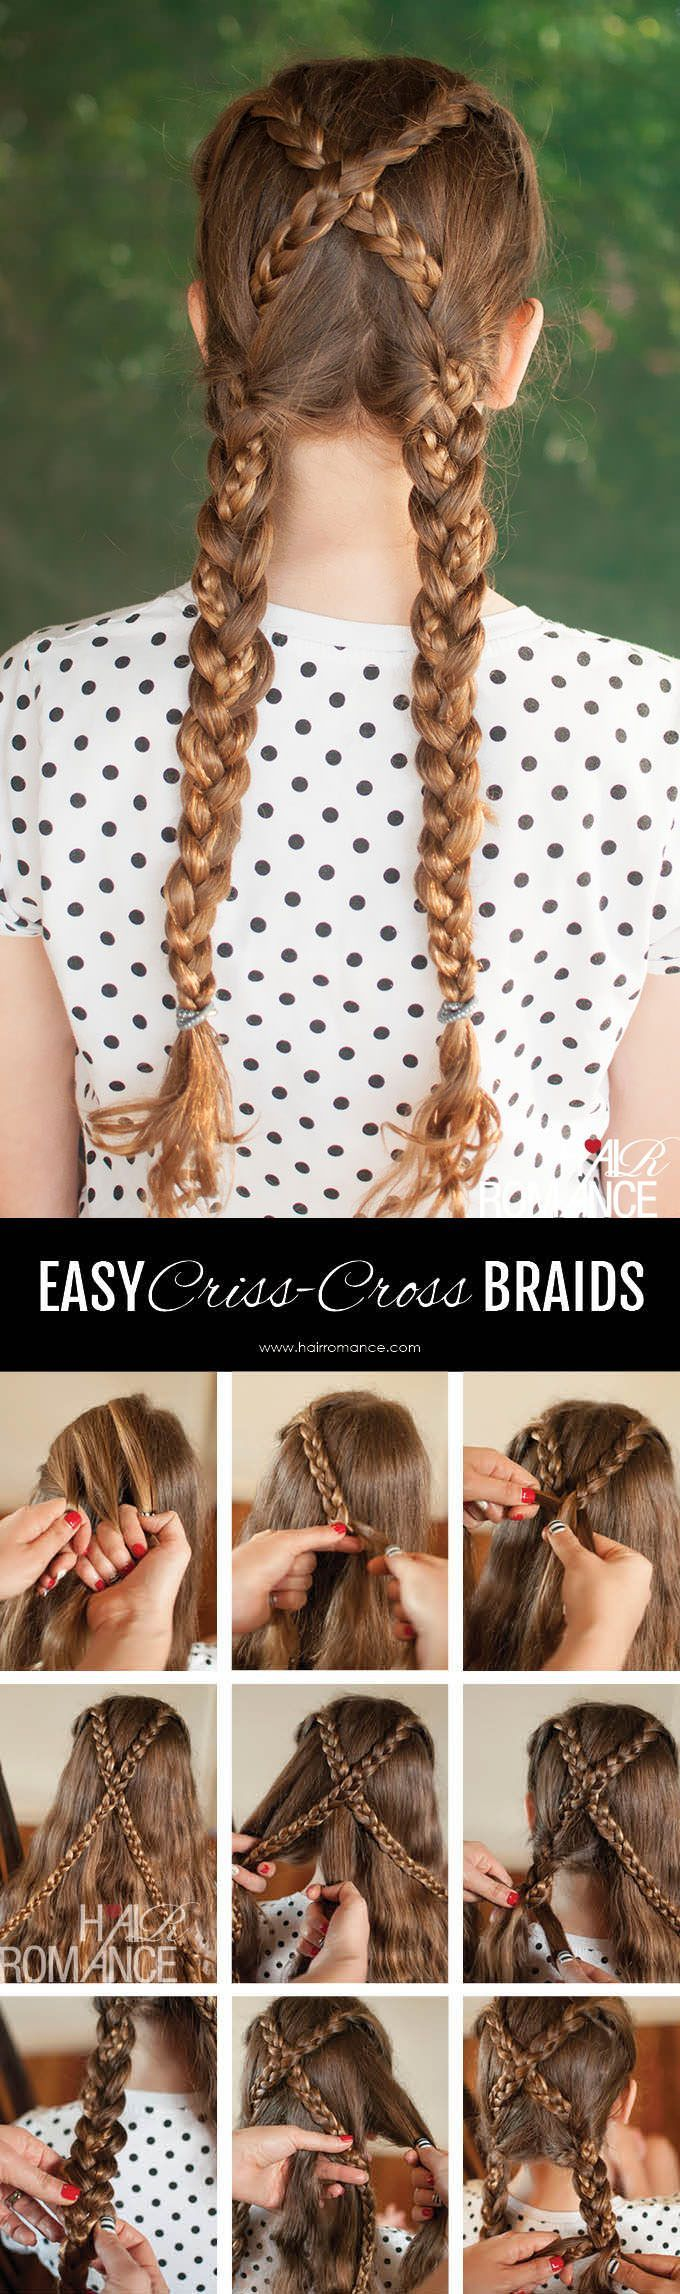 7 Different Style Braids Tutorials | Young Craze - click on the pic and scroll down the page to see several...